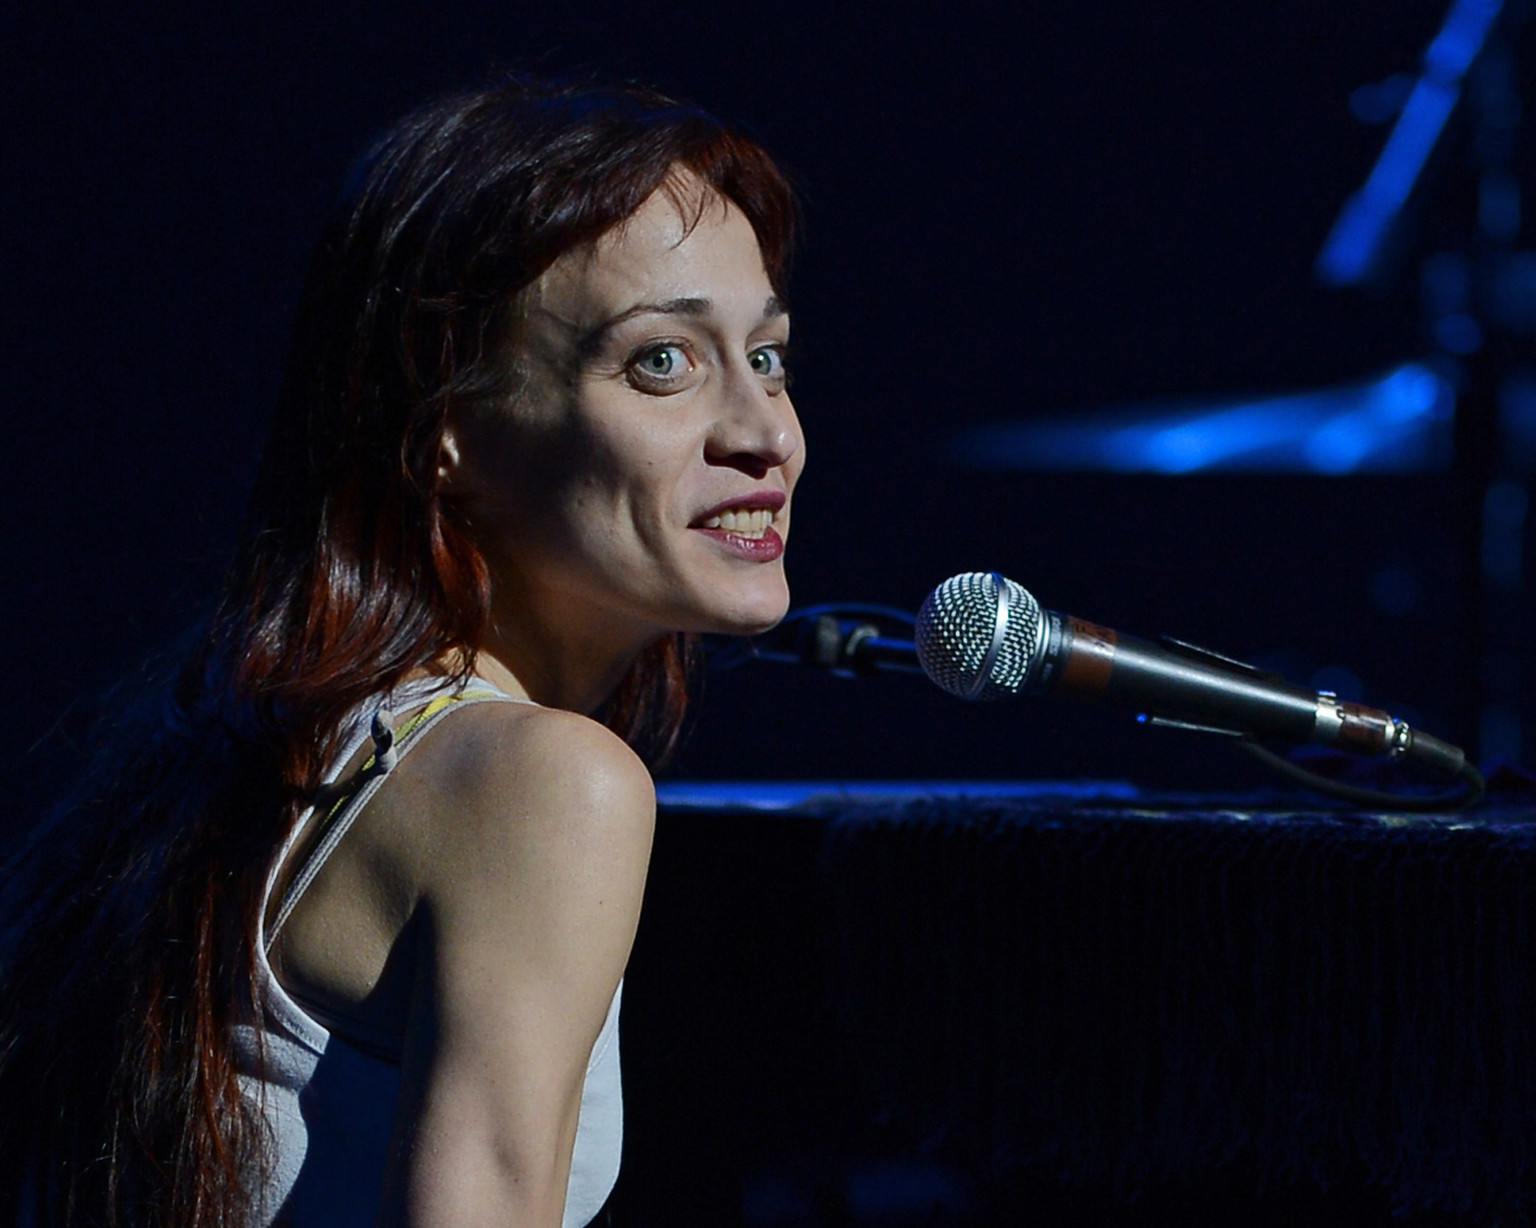 fiona apple container lyrics